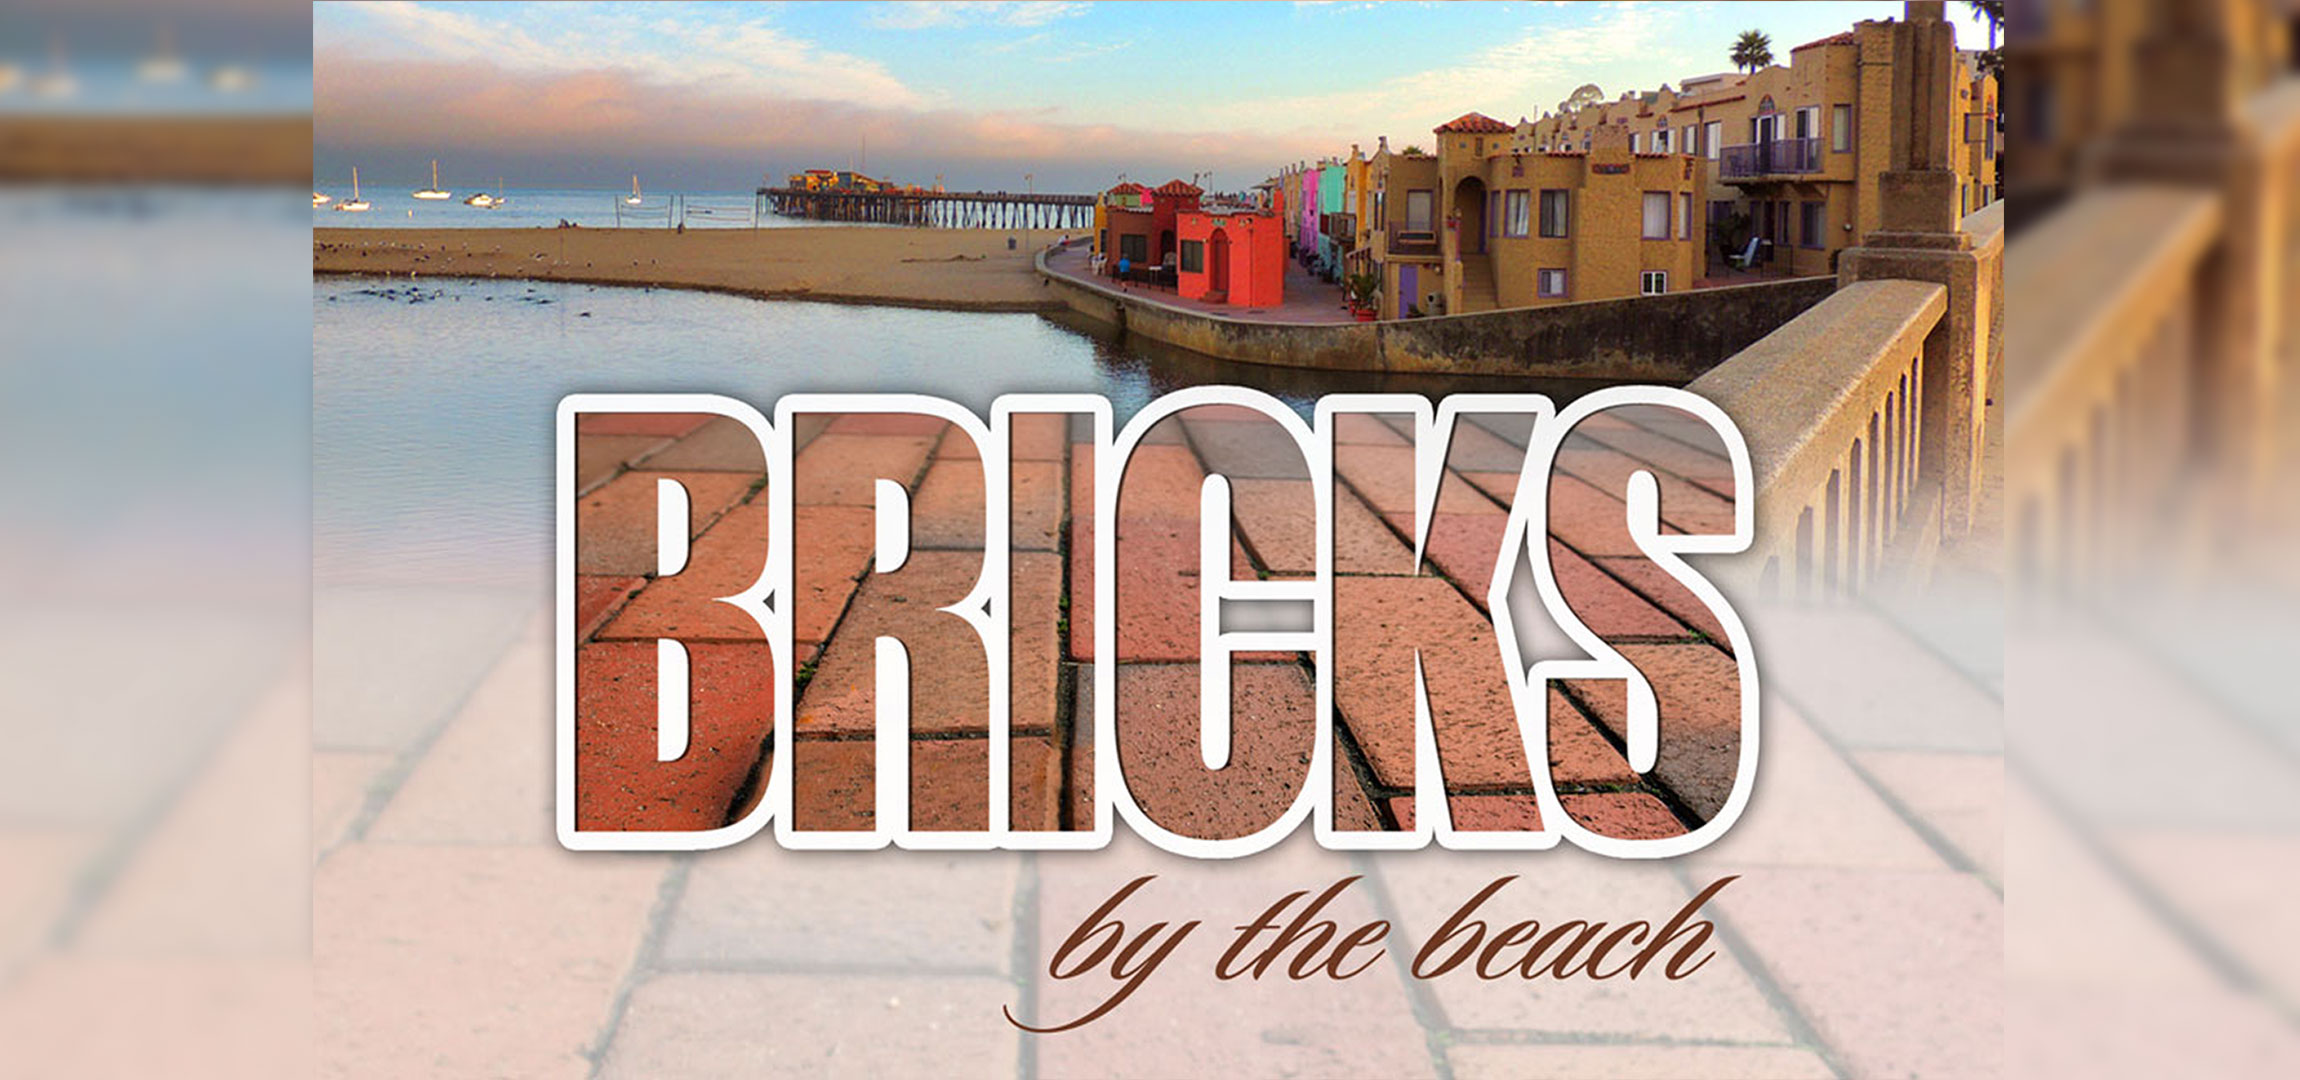 Bricks by the Beach Capitola CA